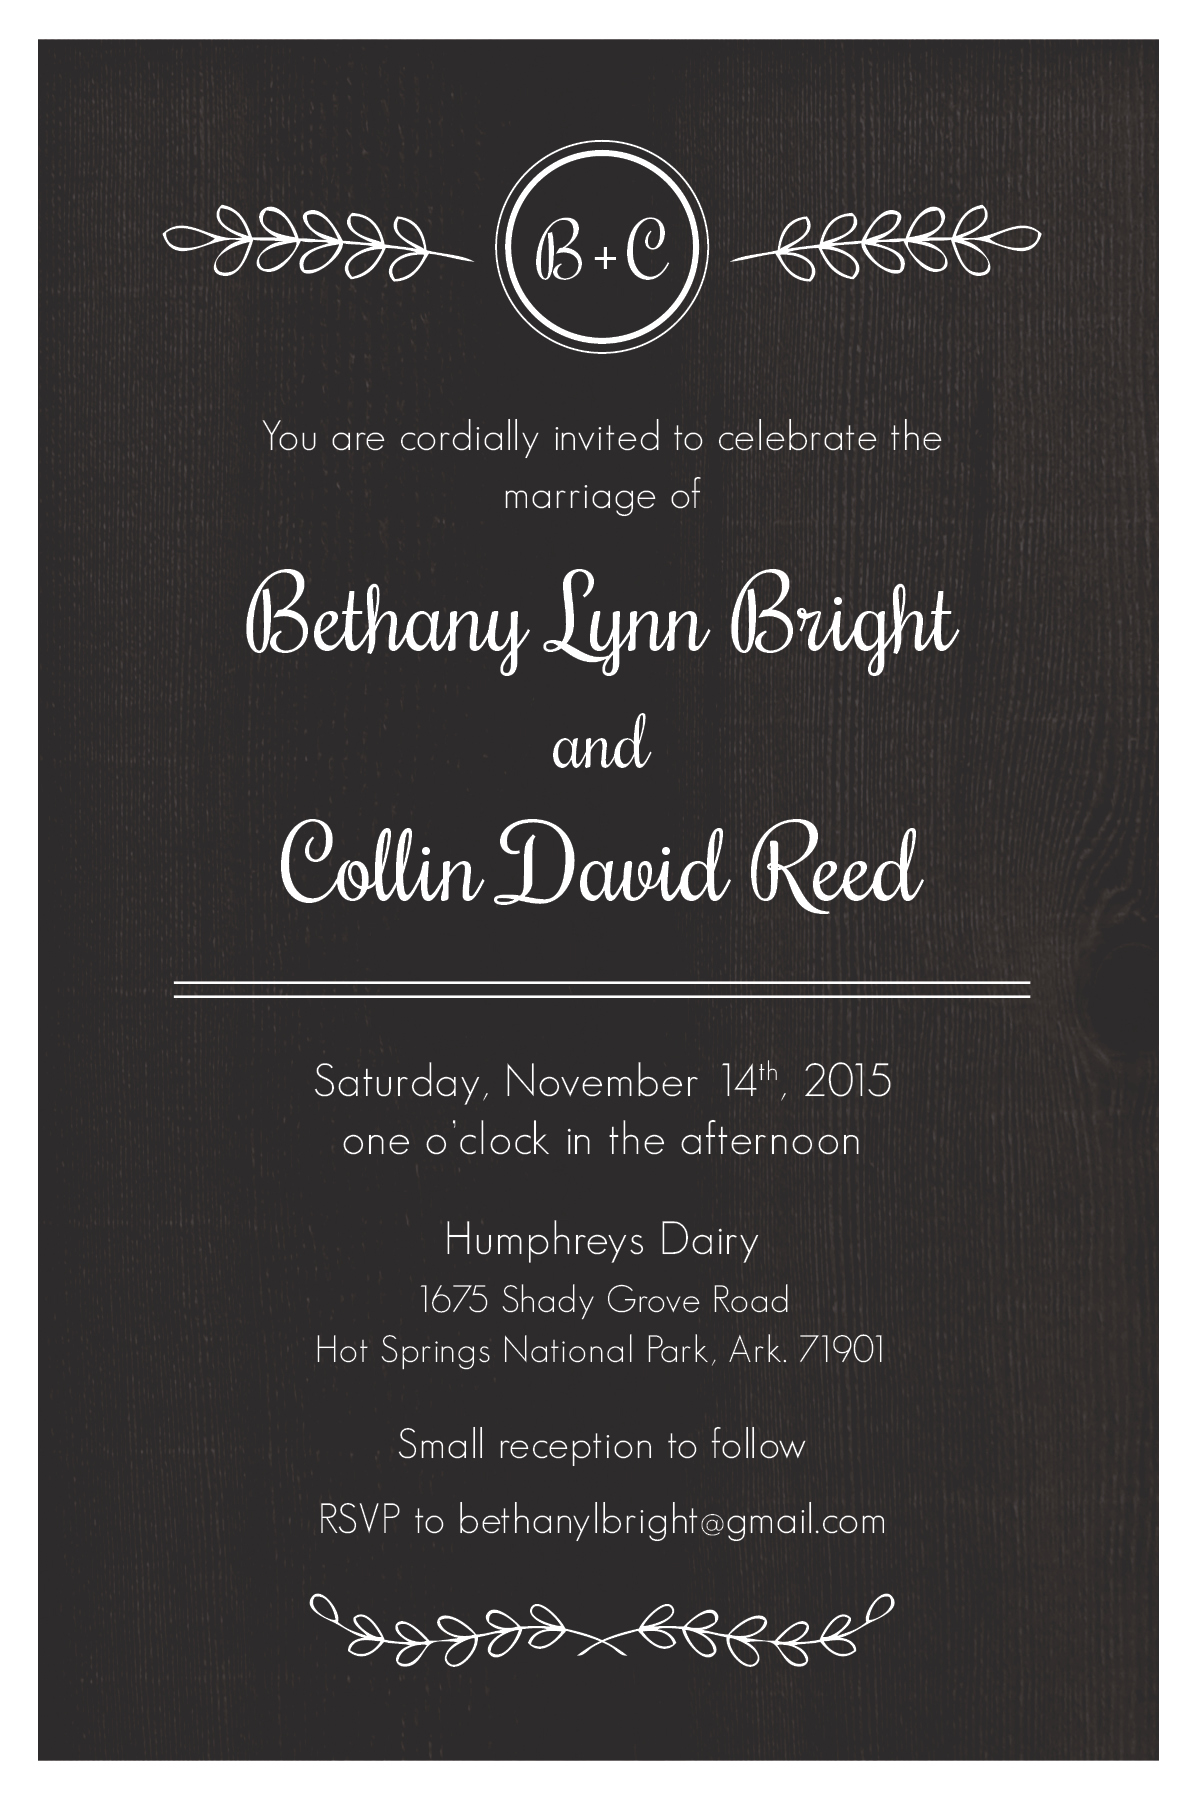 Bright reed wedding invitation suite on behance invite to send to friends of the groom and bride a gift registration card and i spy card to be used at the small reception following the ceremony to stopboris Images